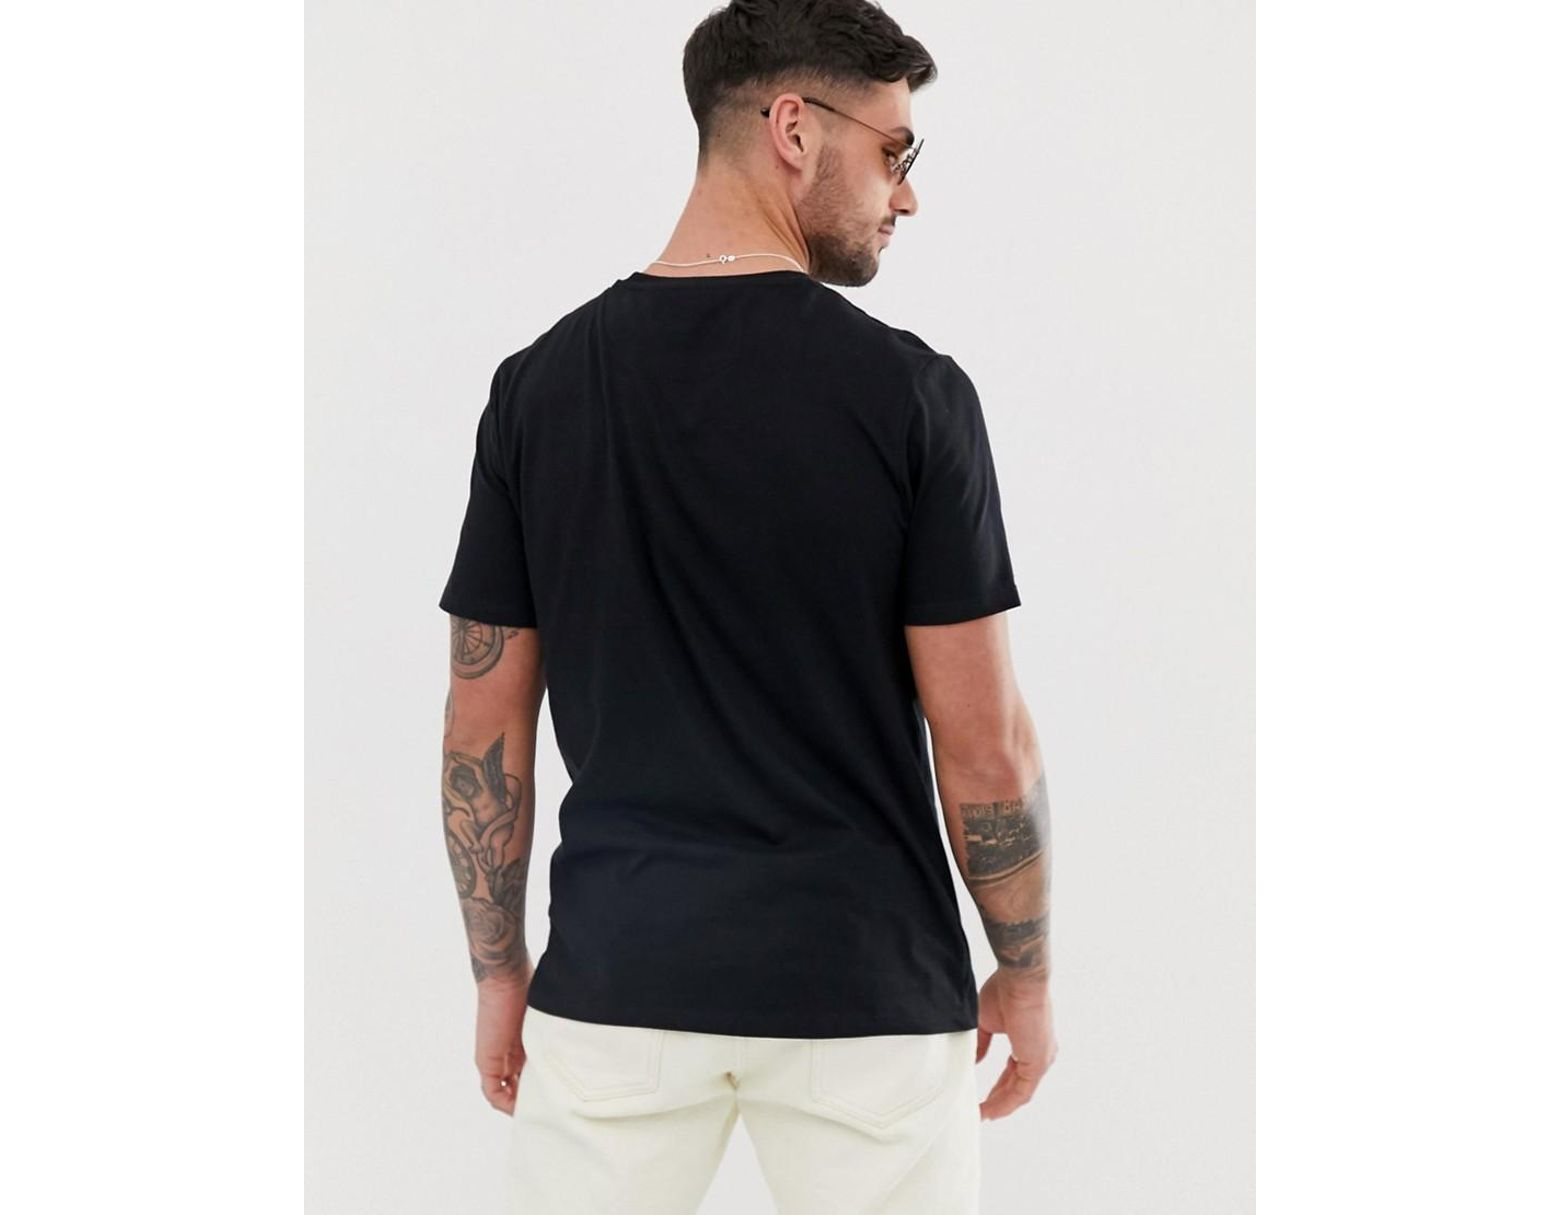 aa18dc88 River Island T-shirt With Prolific Embroidery In Black in Black for Men -  Lyst